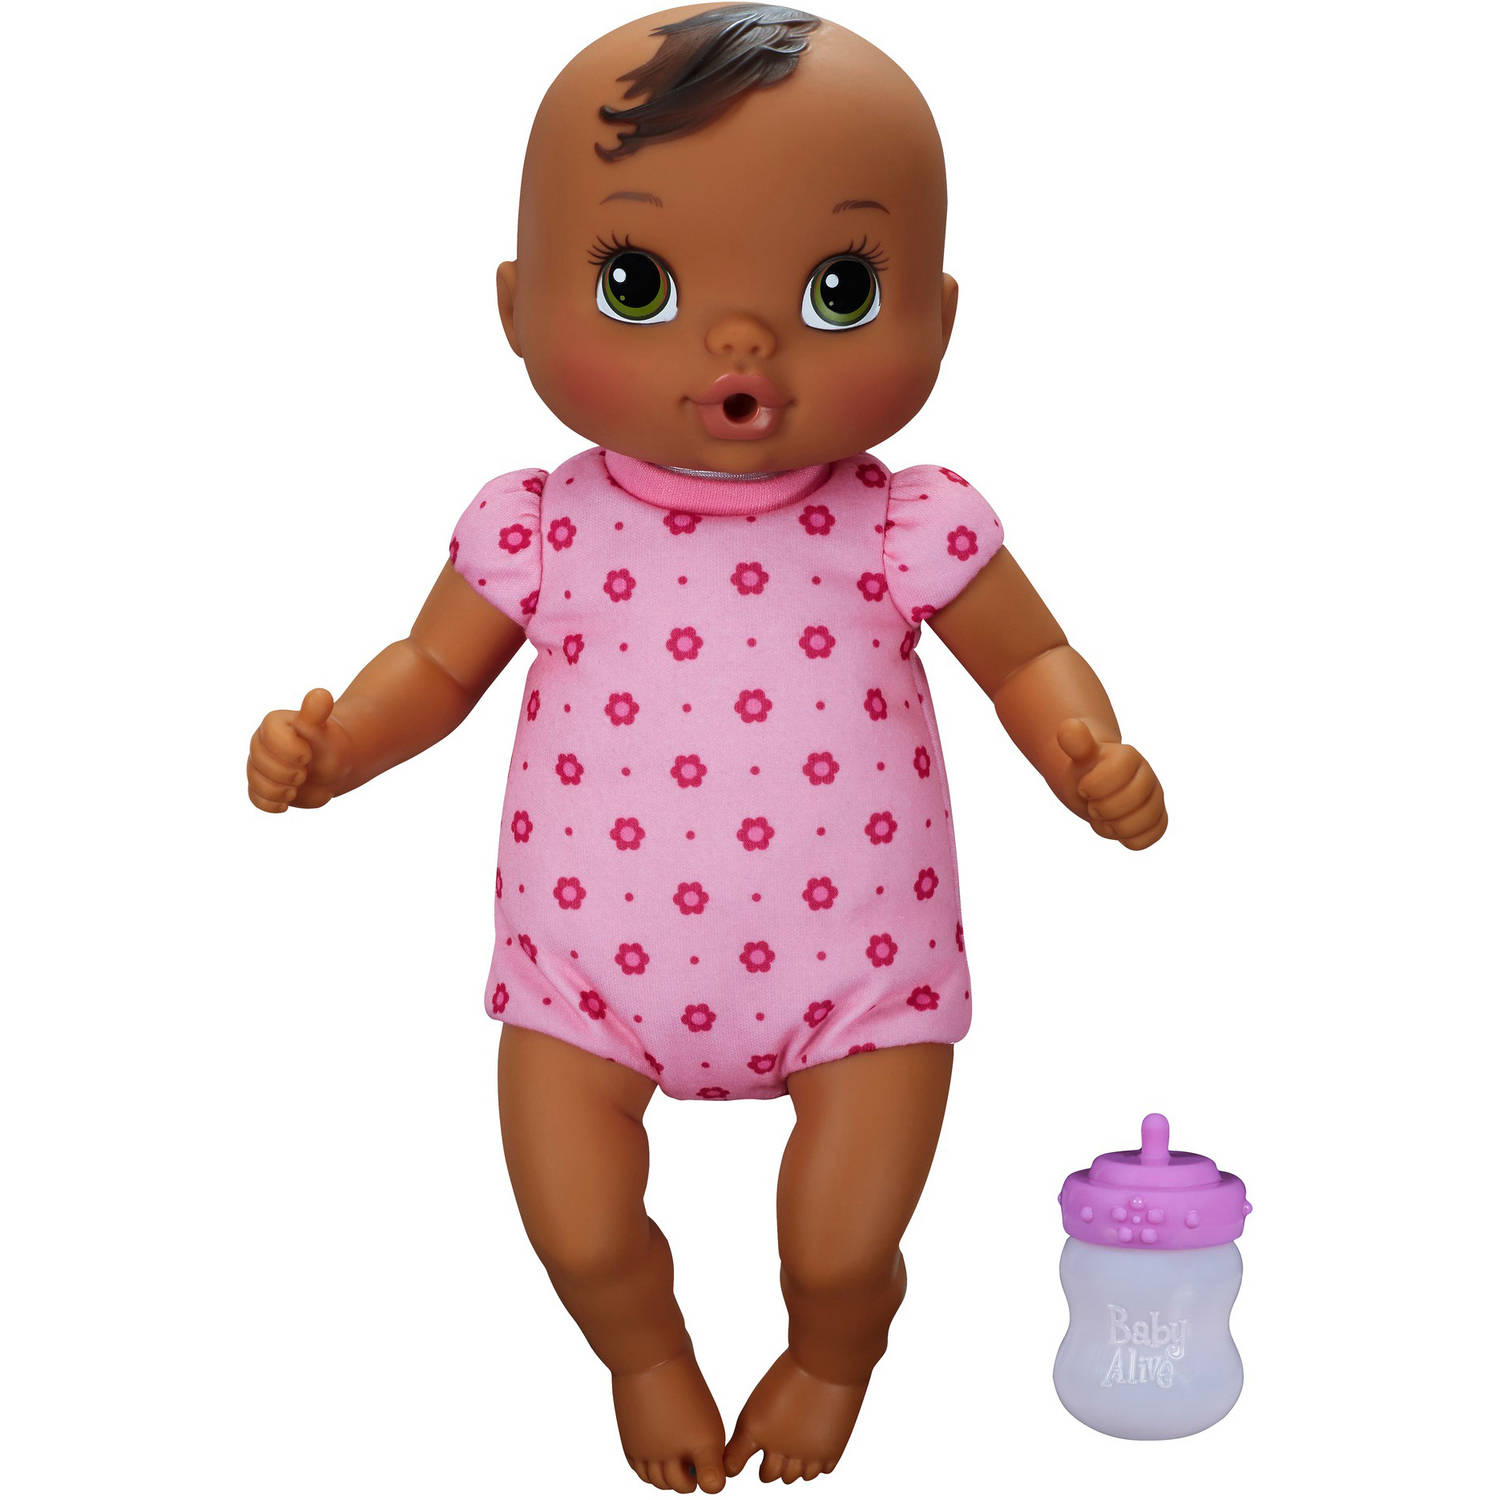 Baby Alive Luv 'n Snuggle Baby, African American